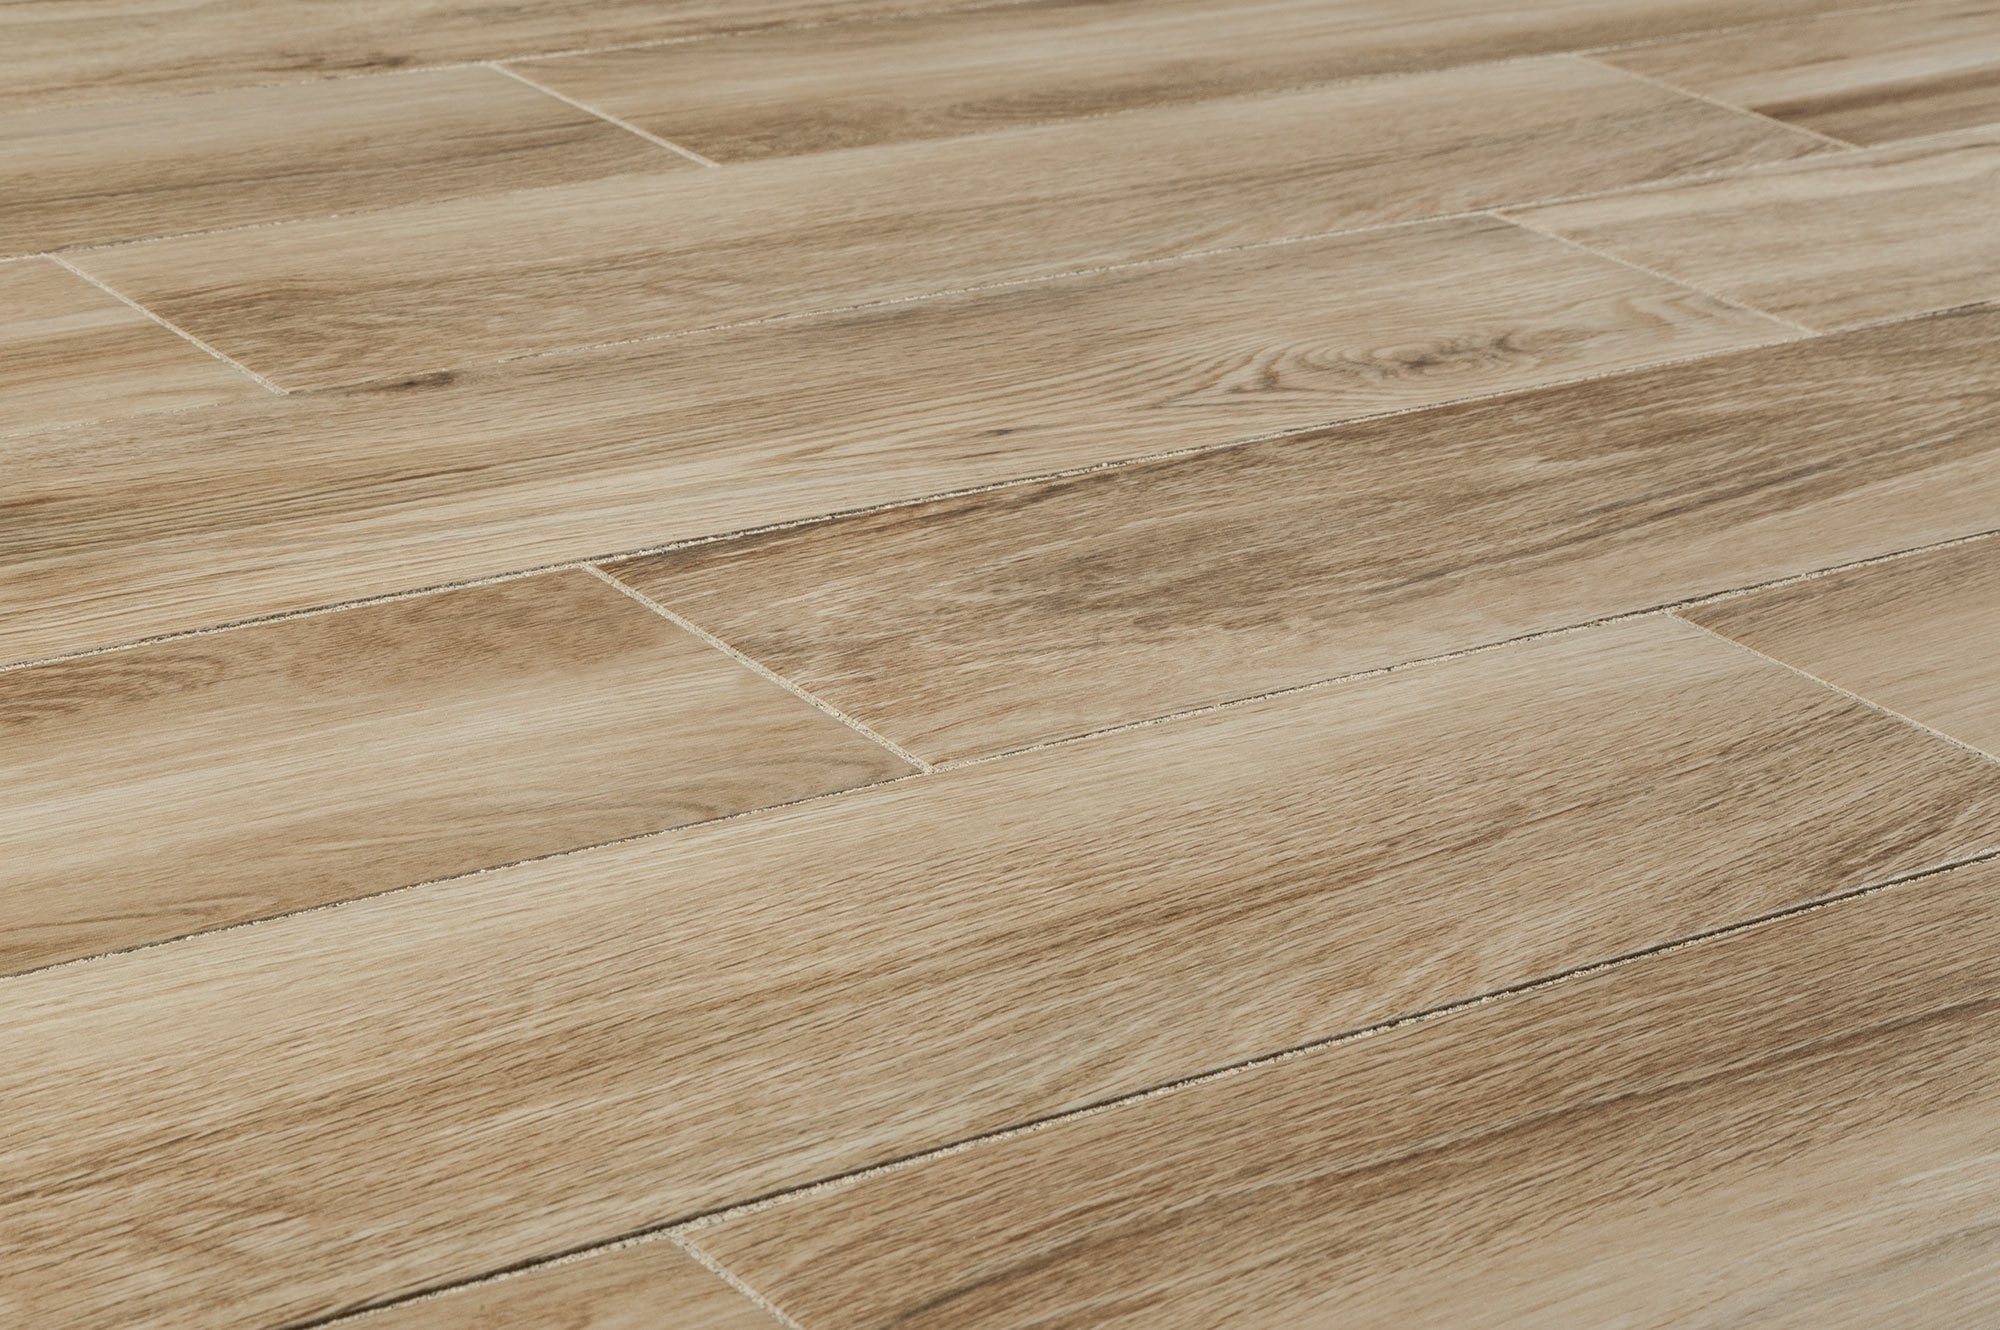 Free samples kaska porcelain tile barn wood series straw 6x24 dailygadgetfo Choice Image